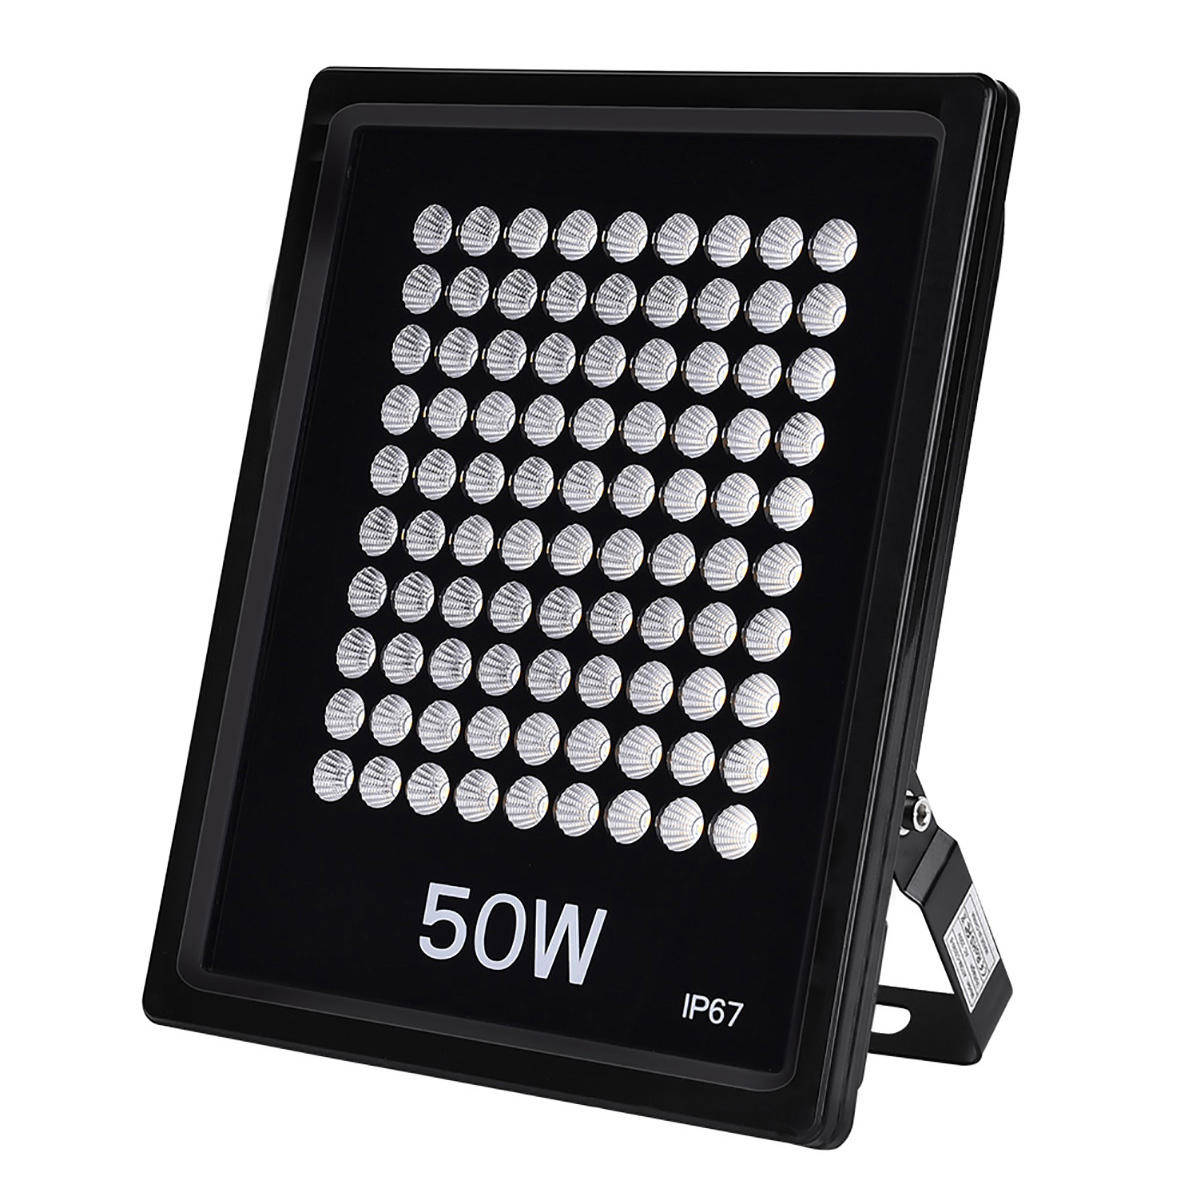 50W LED Flood Light Warm White Lamp Outdoor Security Lighting Spot Lamp IP67